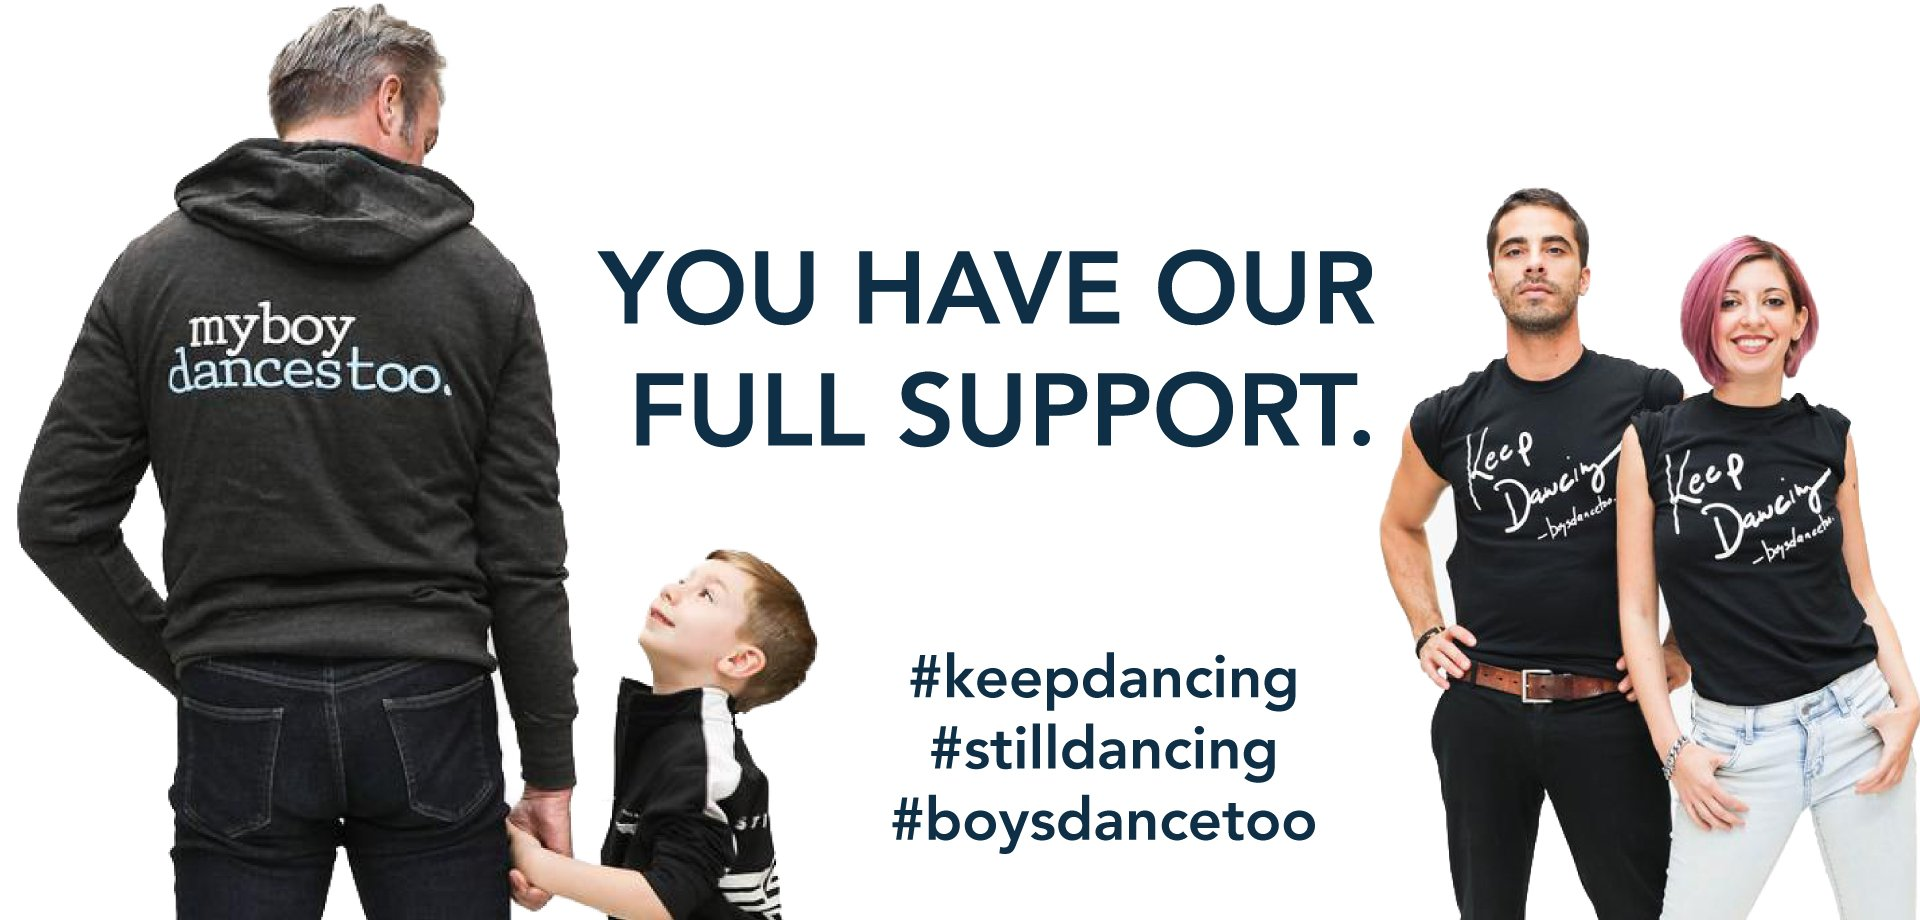 boysdancetoo. - the dance store for men